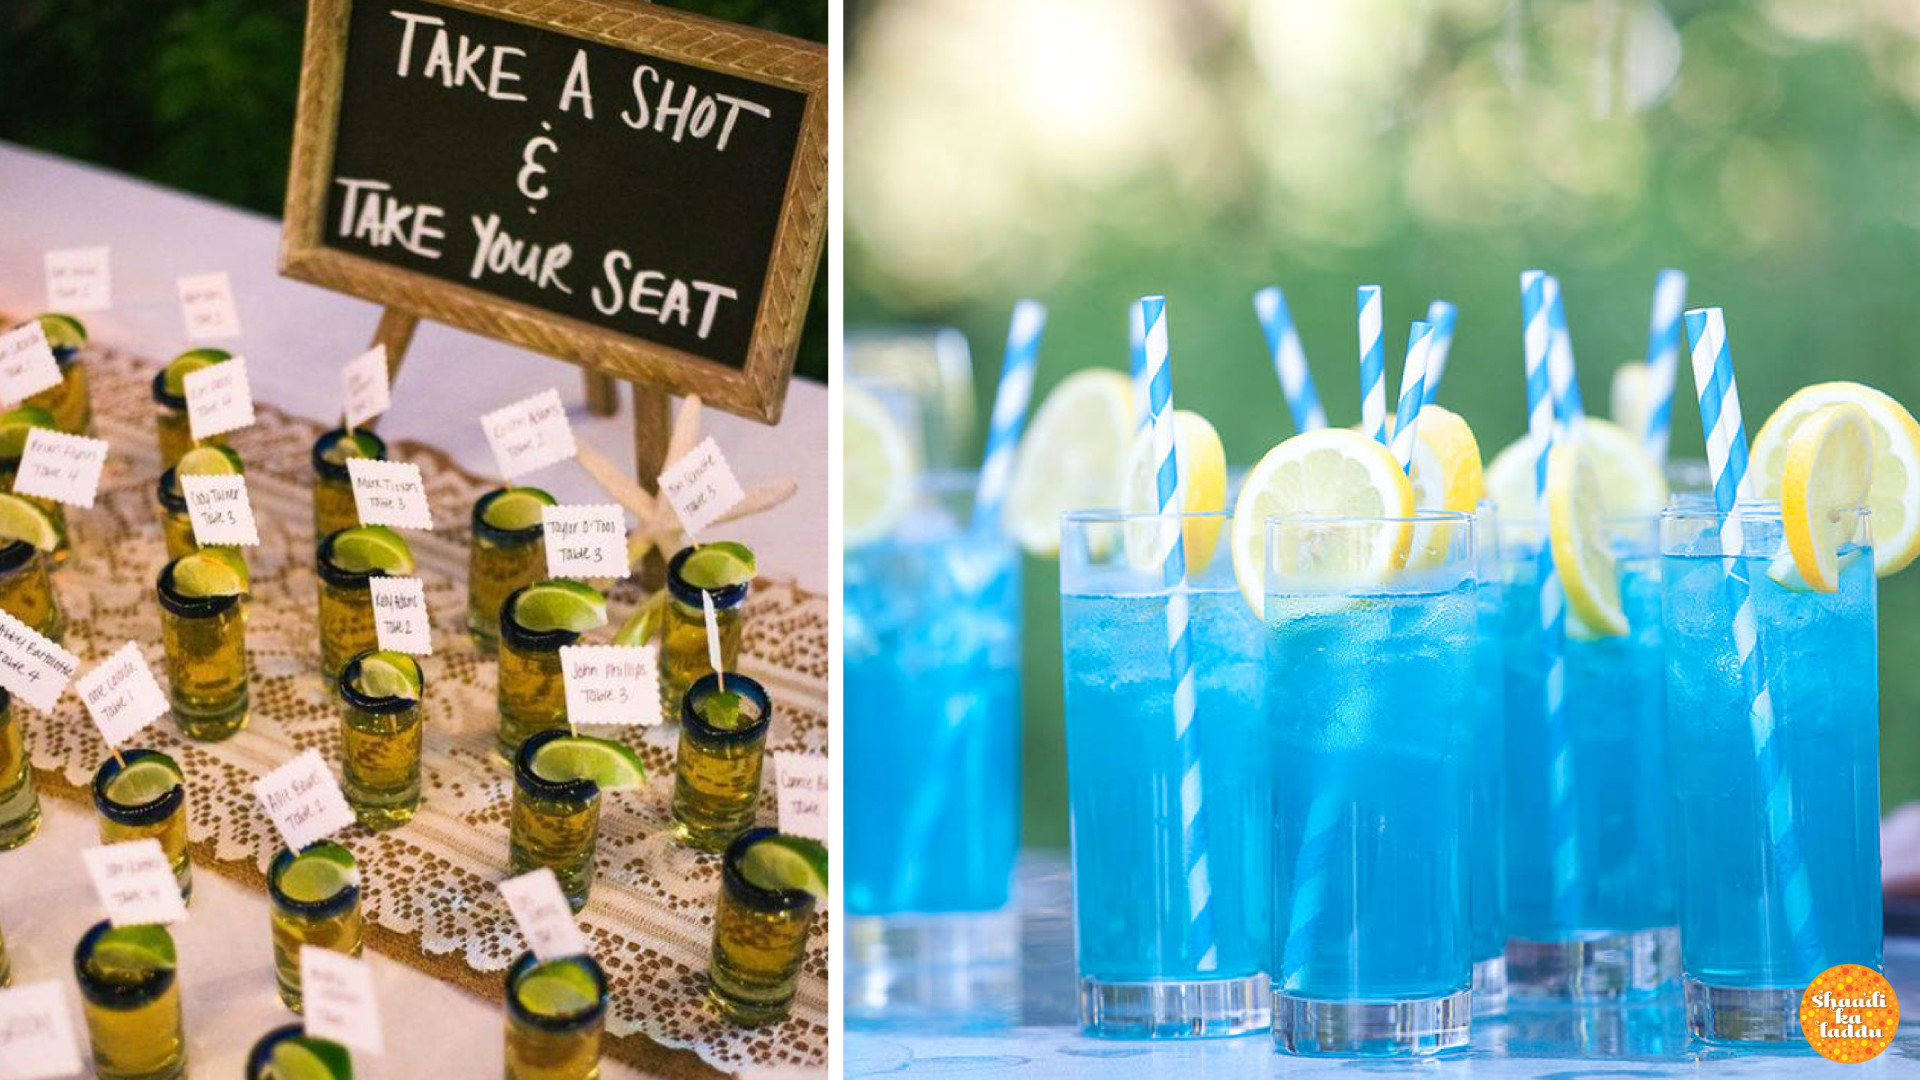 Aesthetically served low alcohol shots, cocktails like Blue Lagoon also adds to the wedding decor